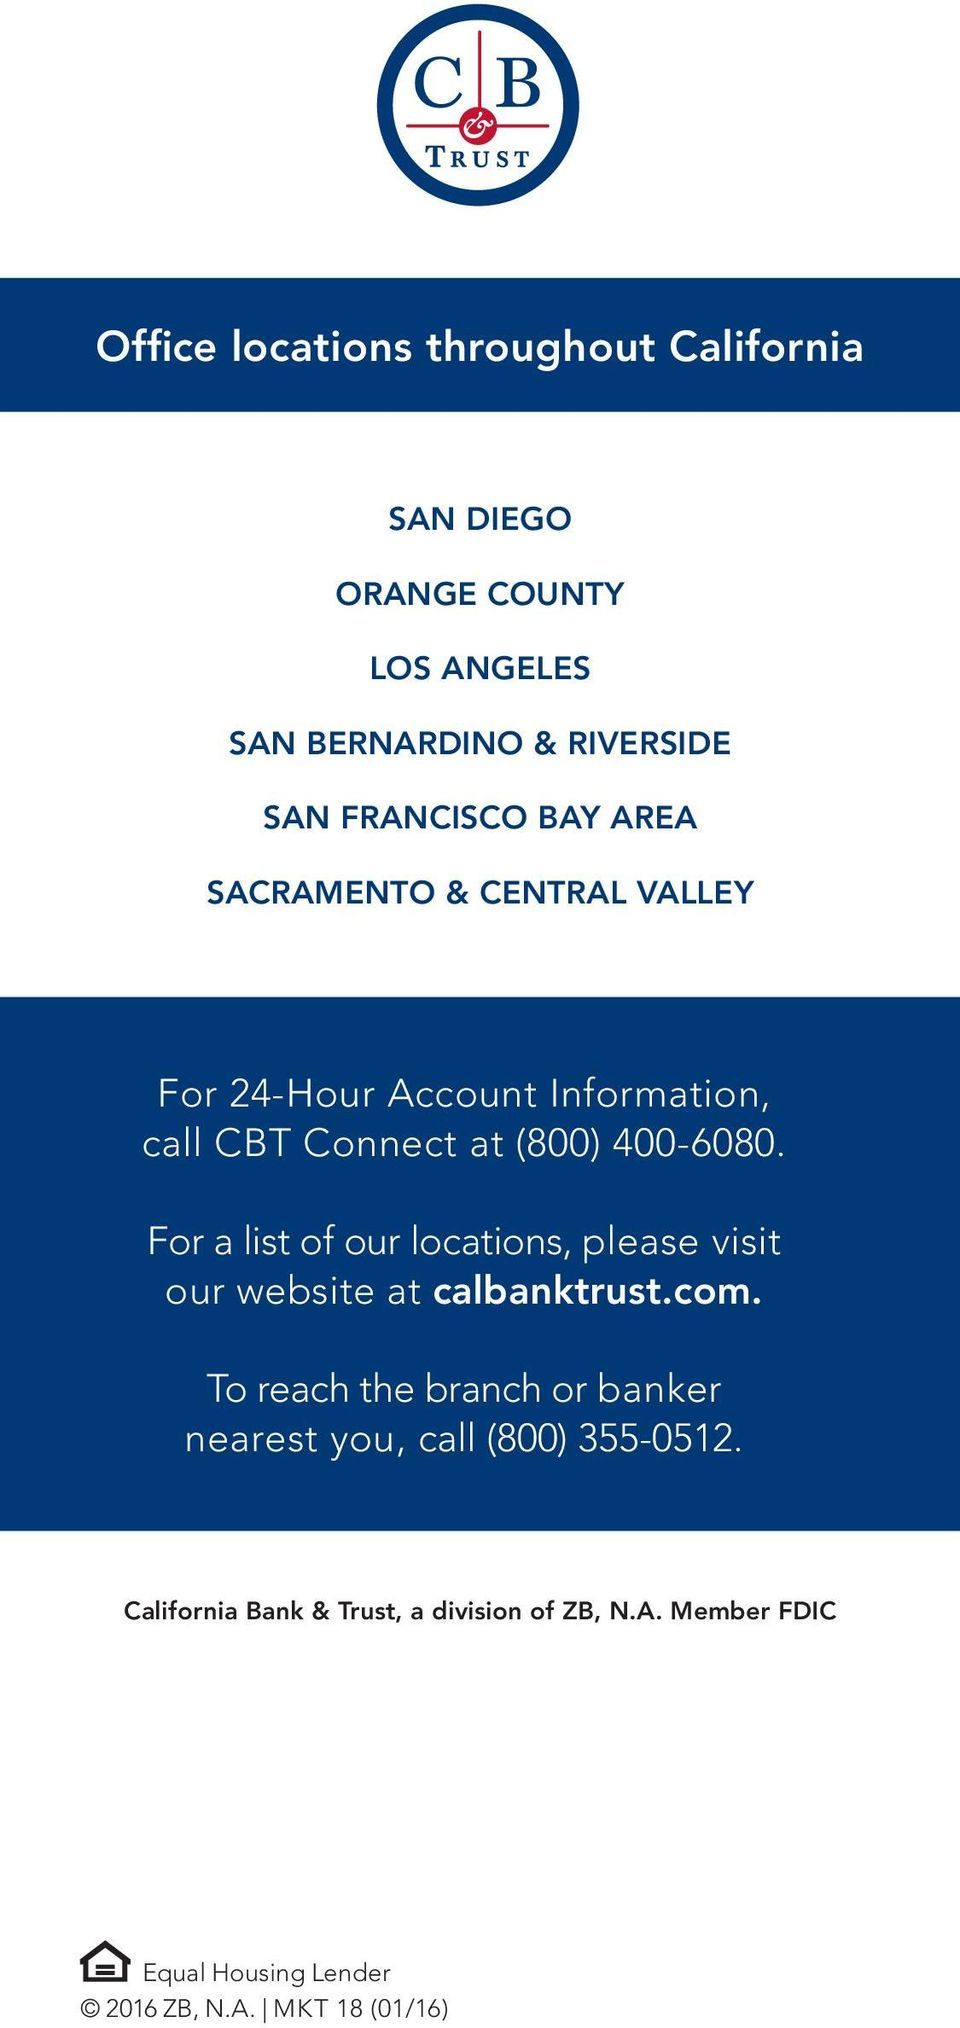 For a list of our locations, please visit our website at calbanktrust.com.